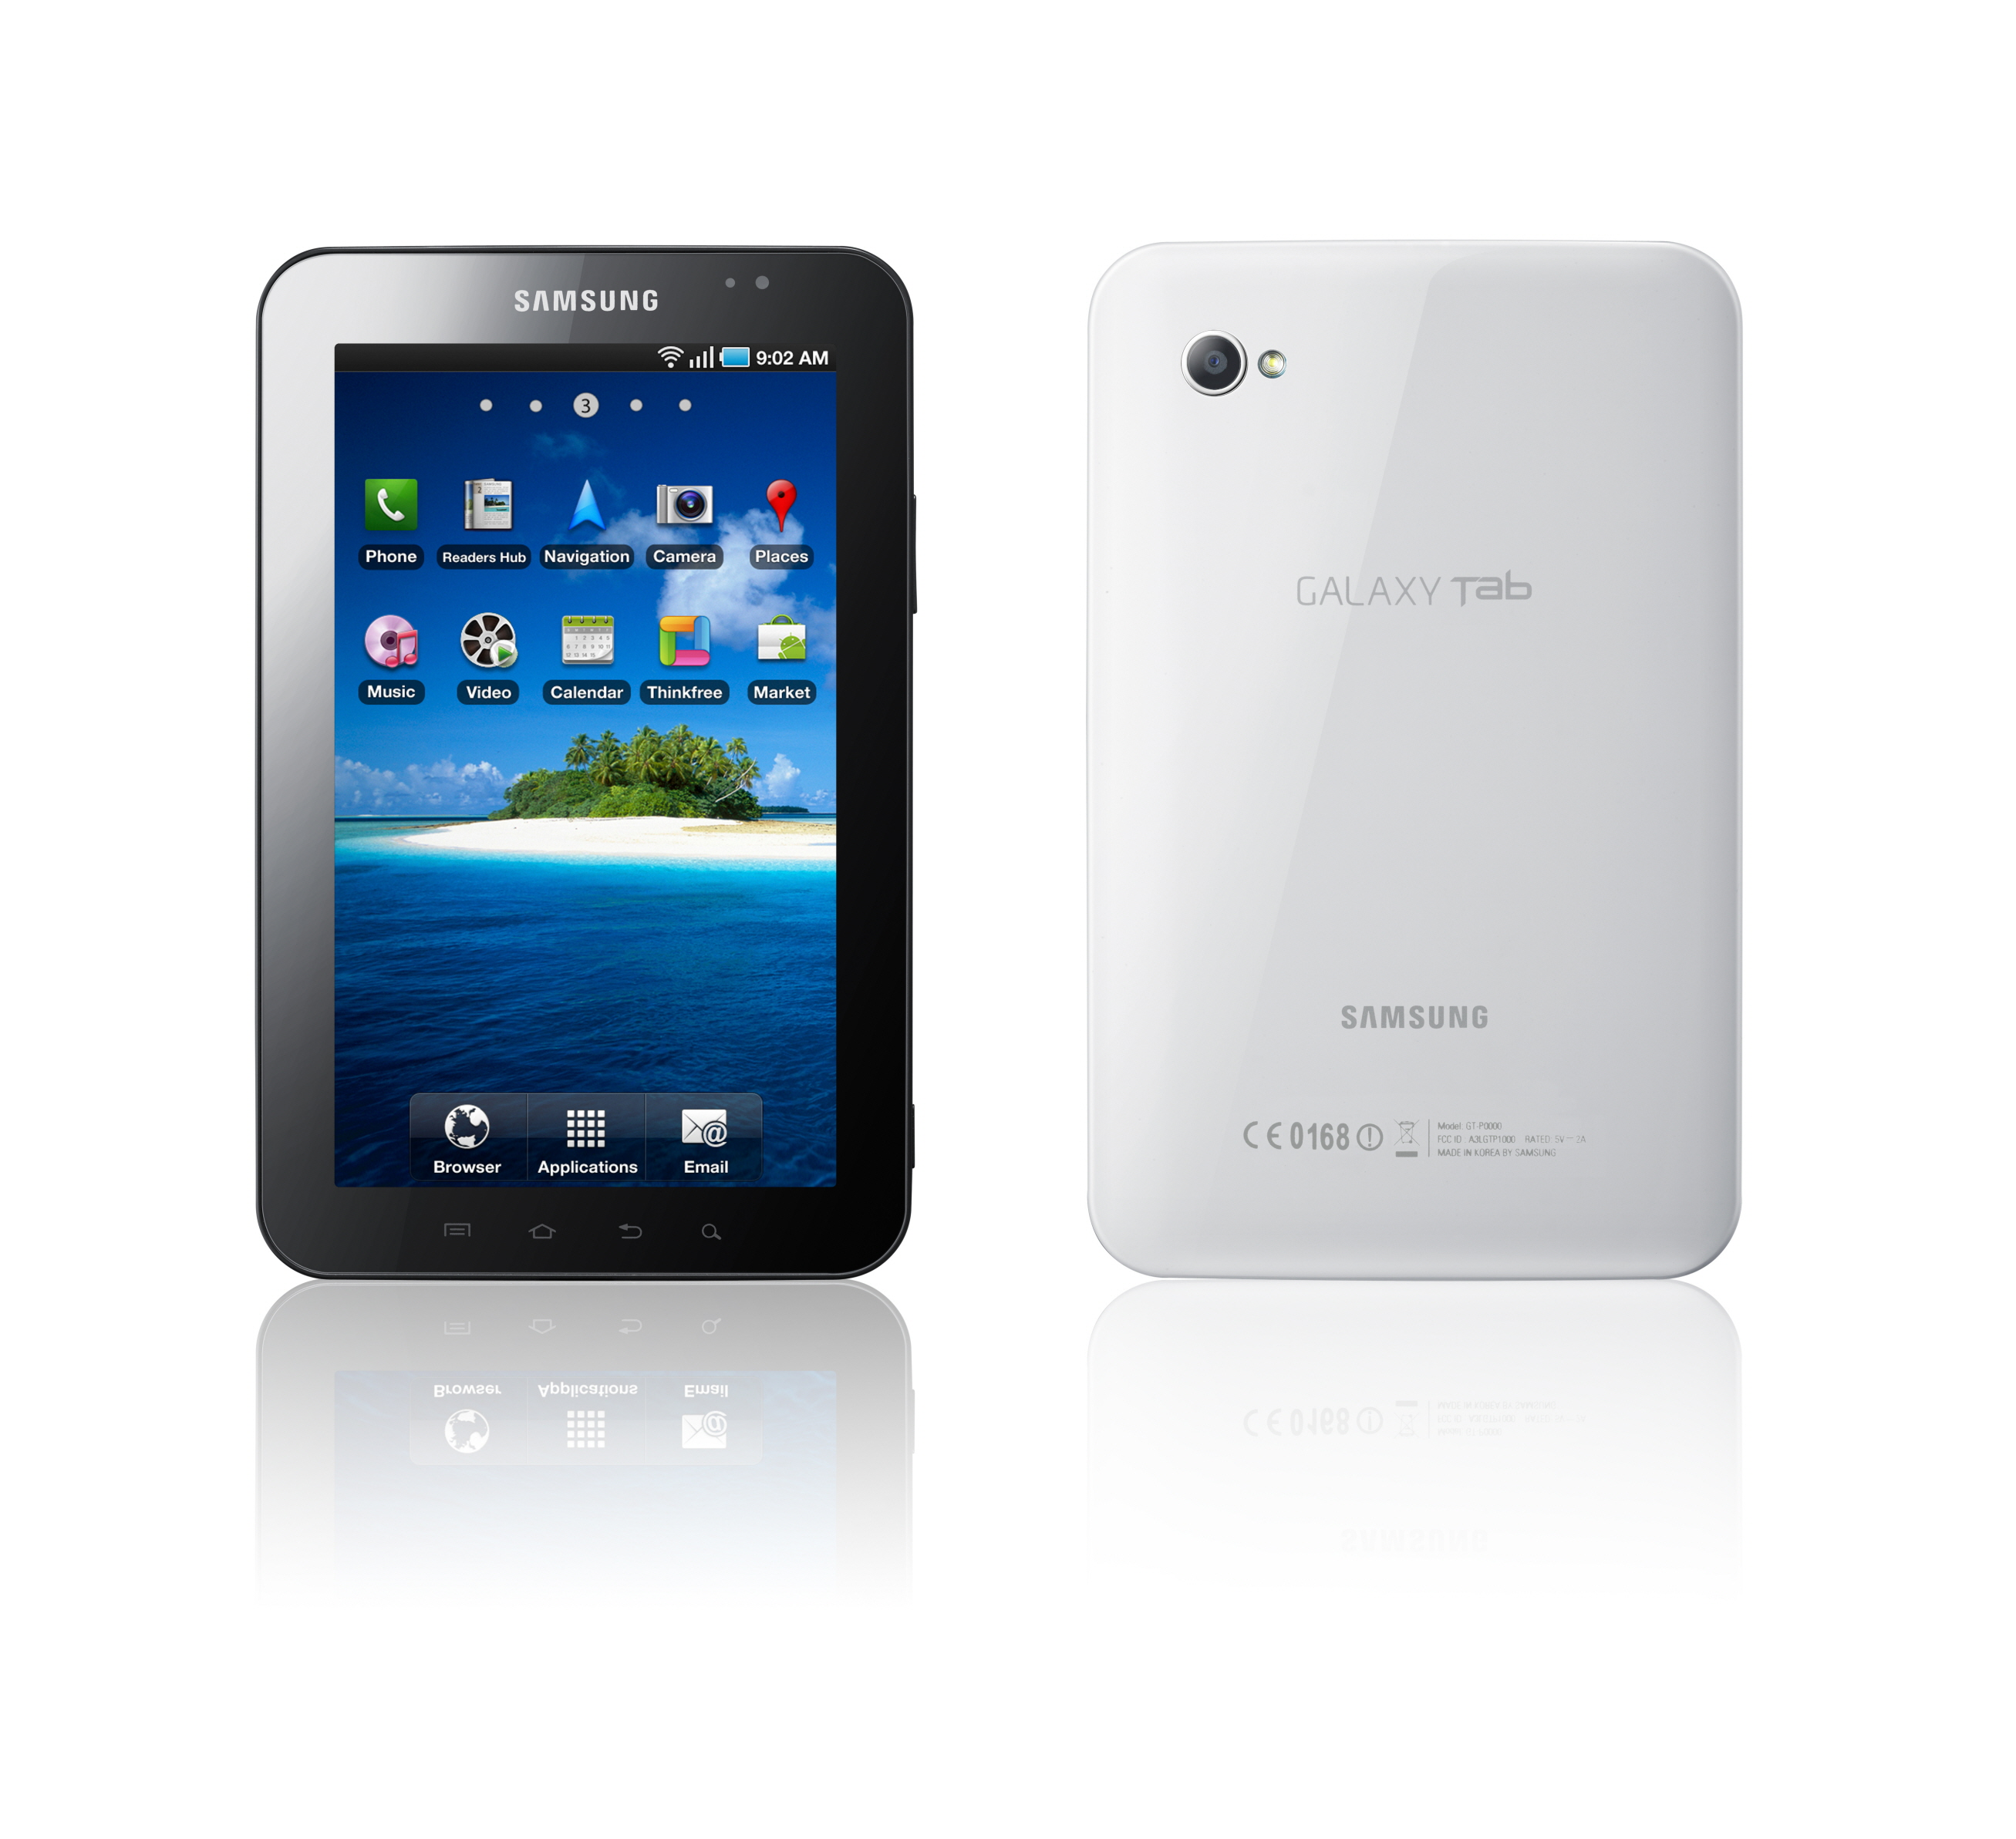 Samsung Galaxy Tab - Front and Rear View